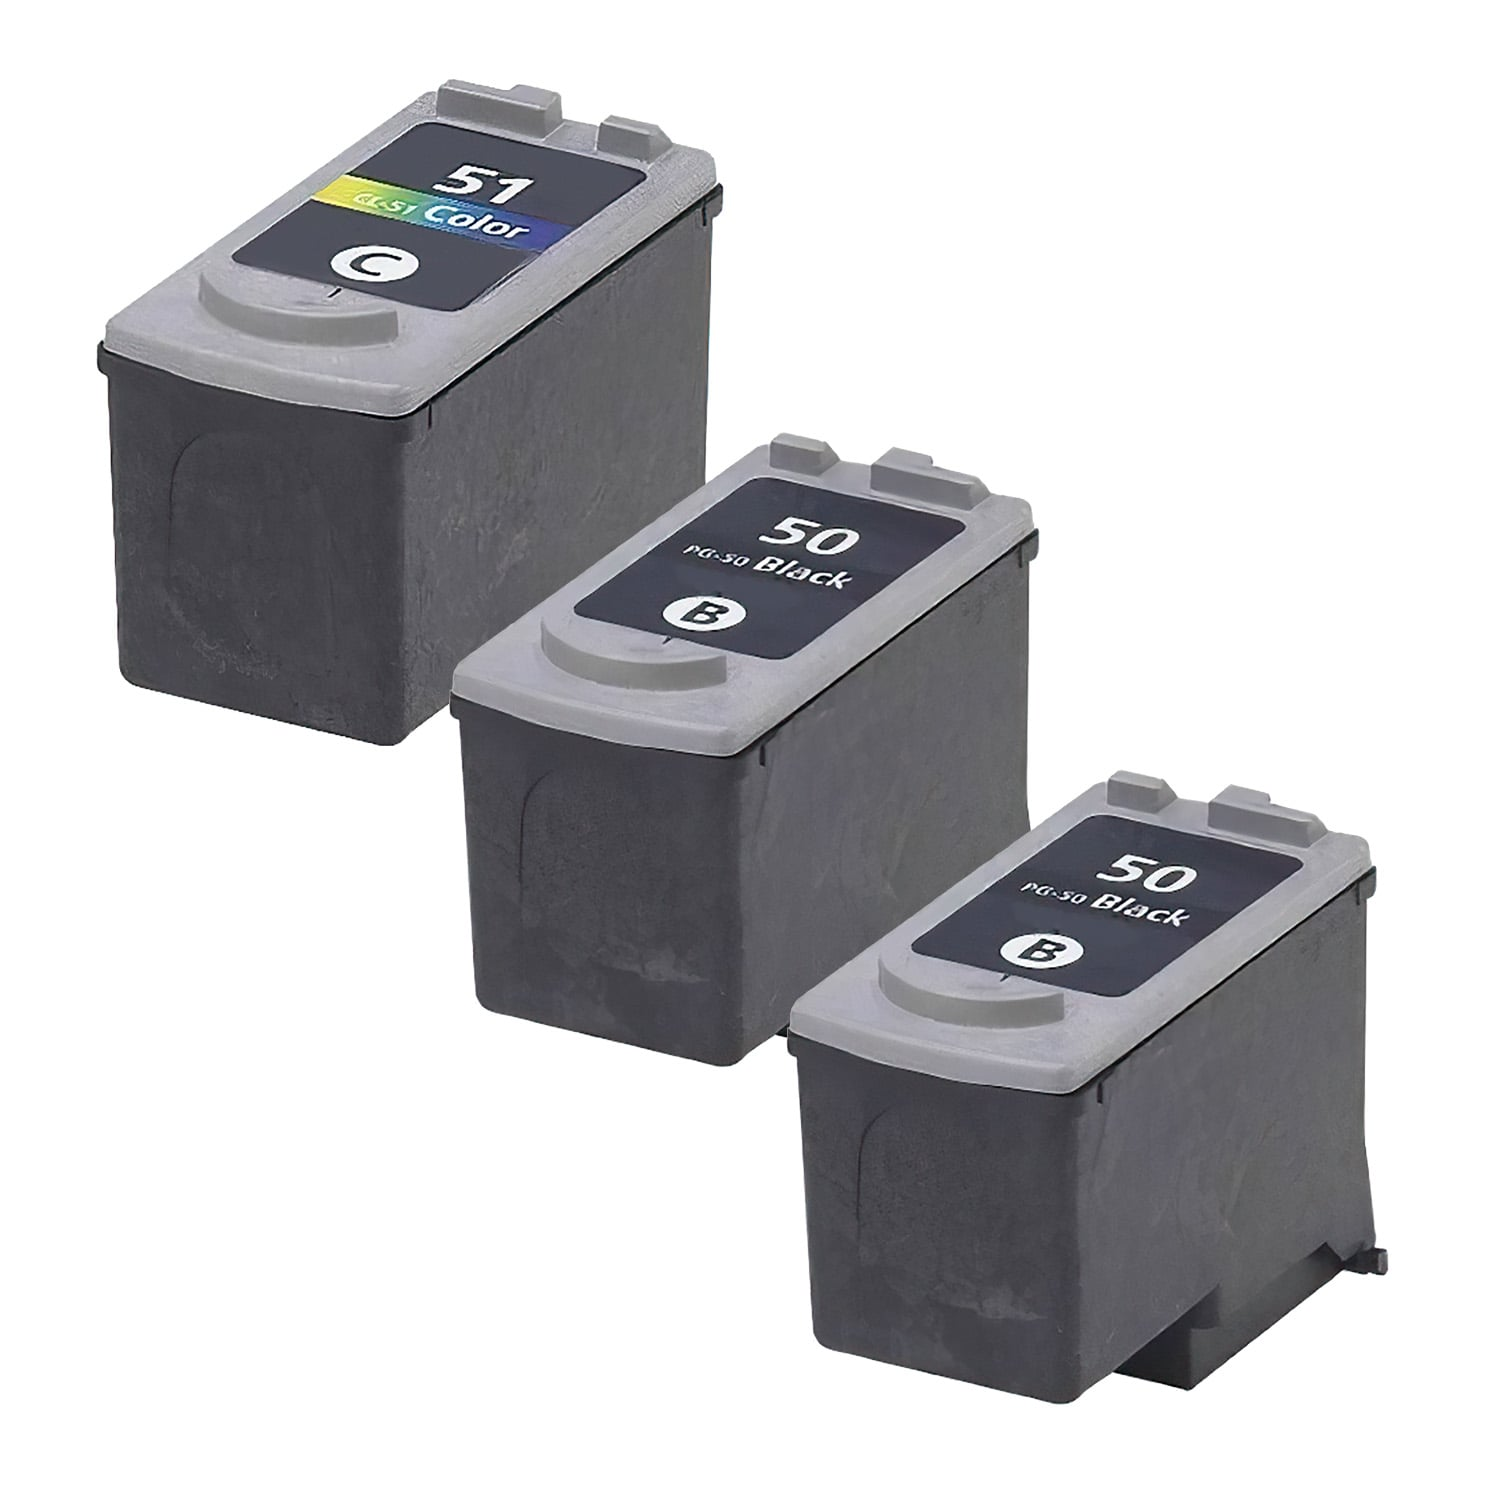 Remanufactured Canon CL-51-PG-50 Inkjet High Capacity Pack - 3 Cartridges